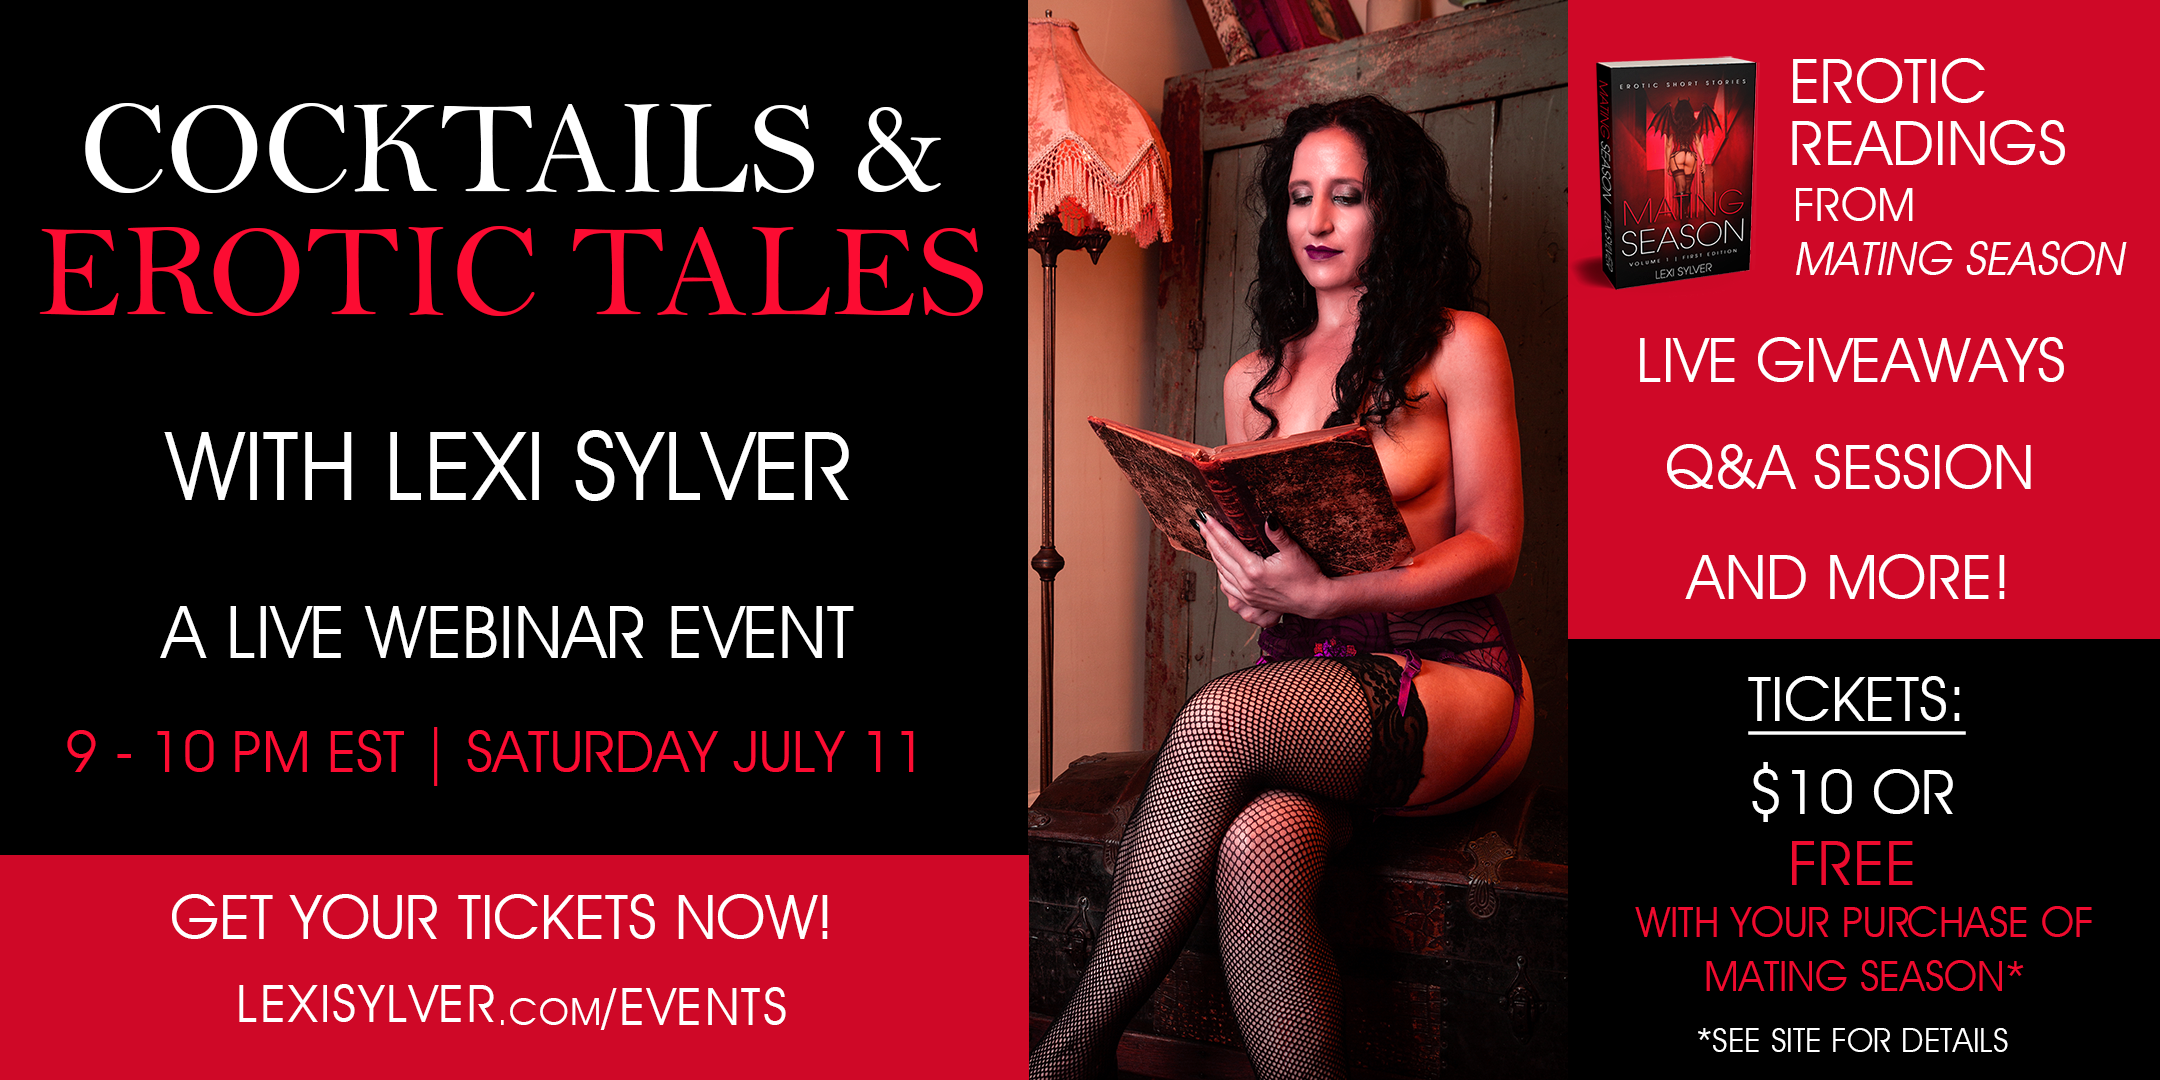 Lexi Sylver Erotic Short Stories Cocktails and Erotic Tales